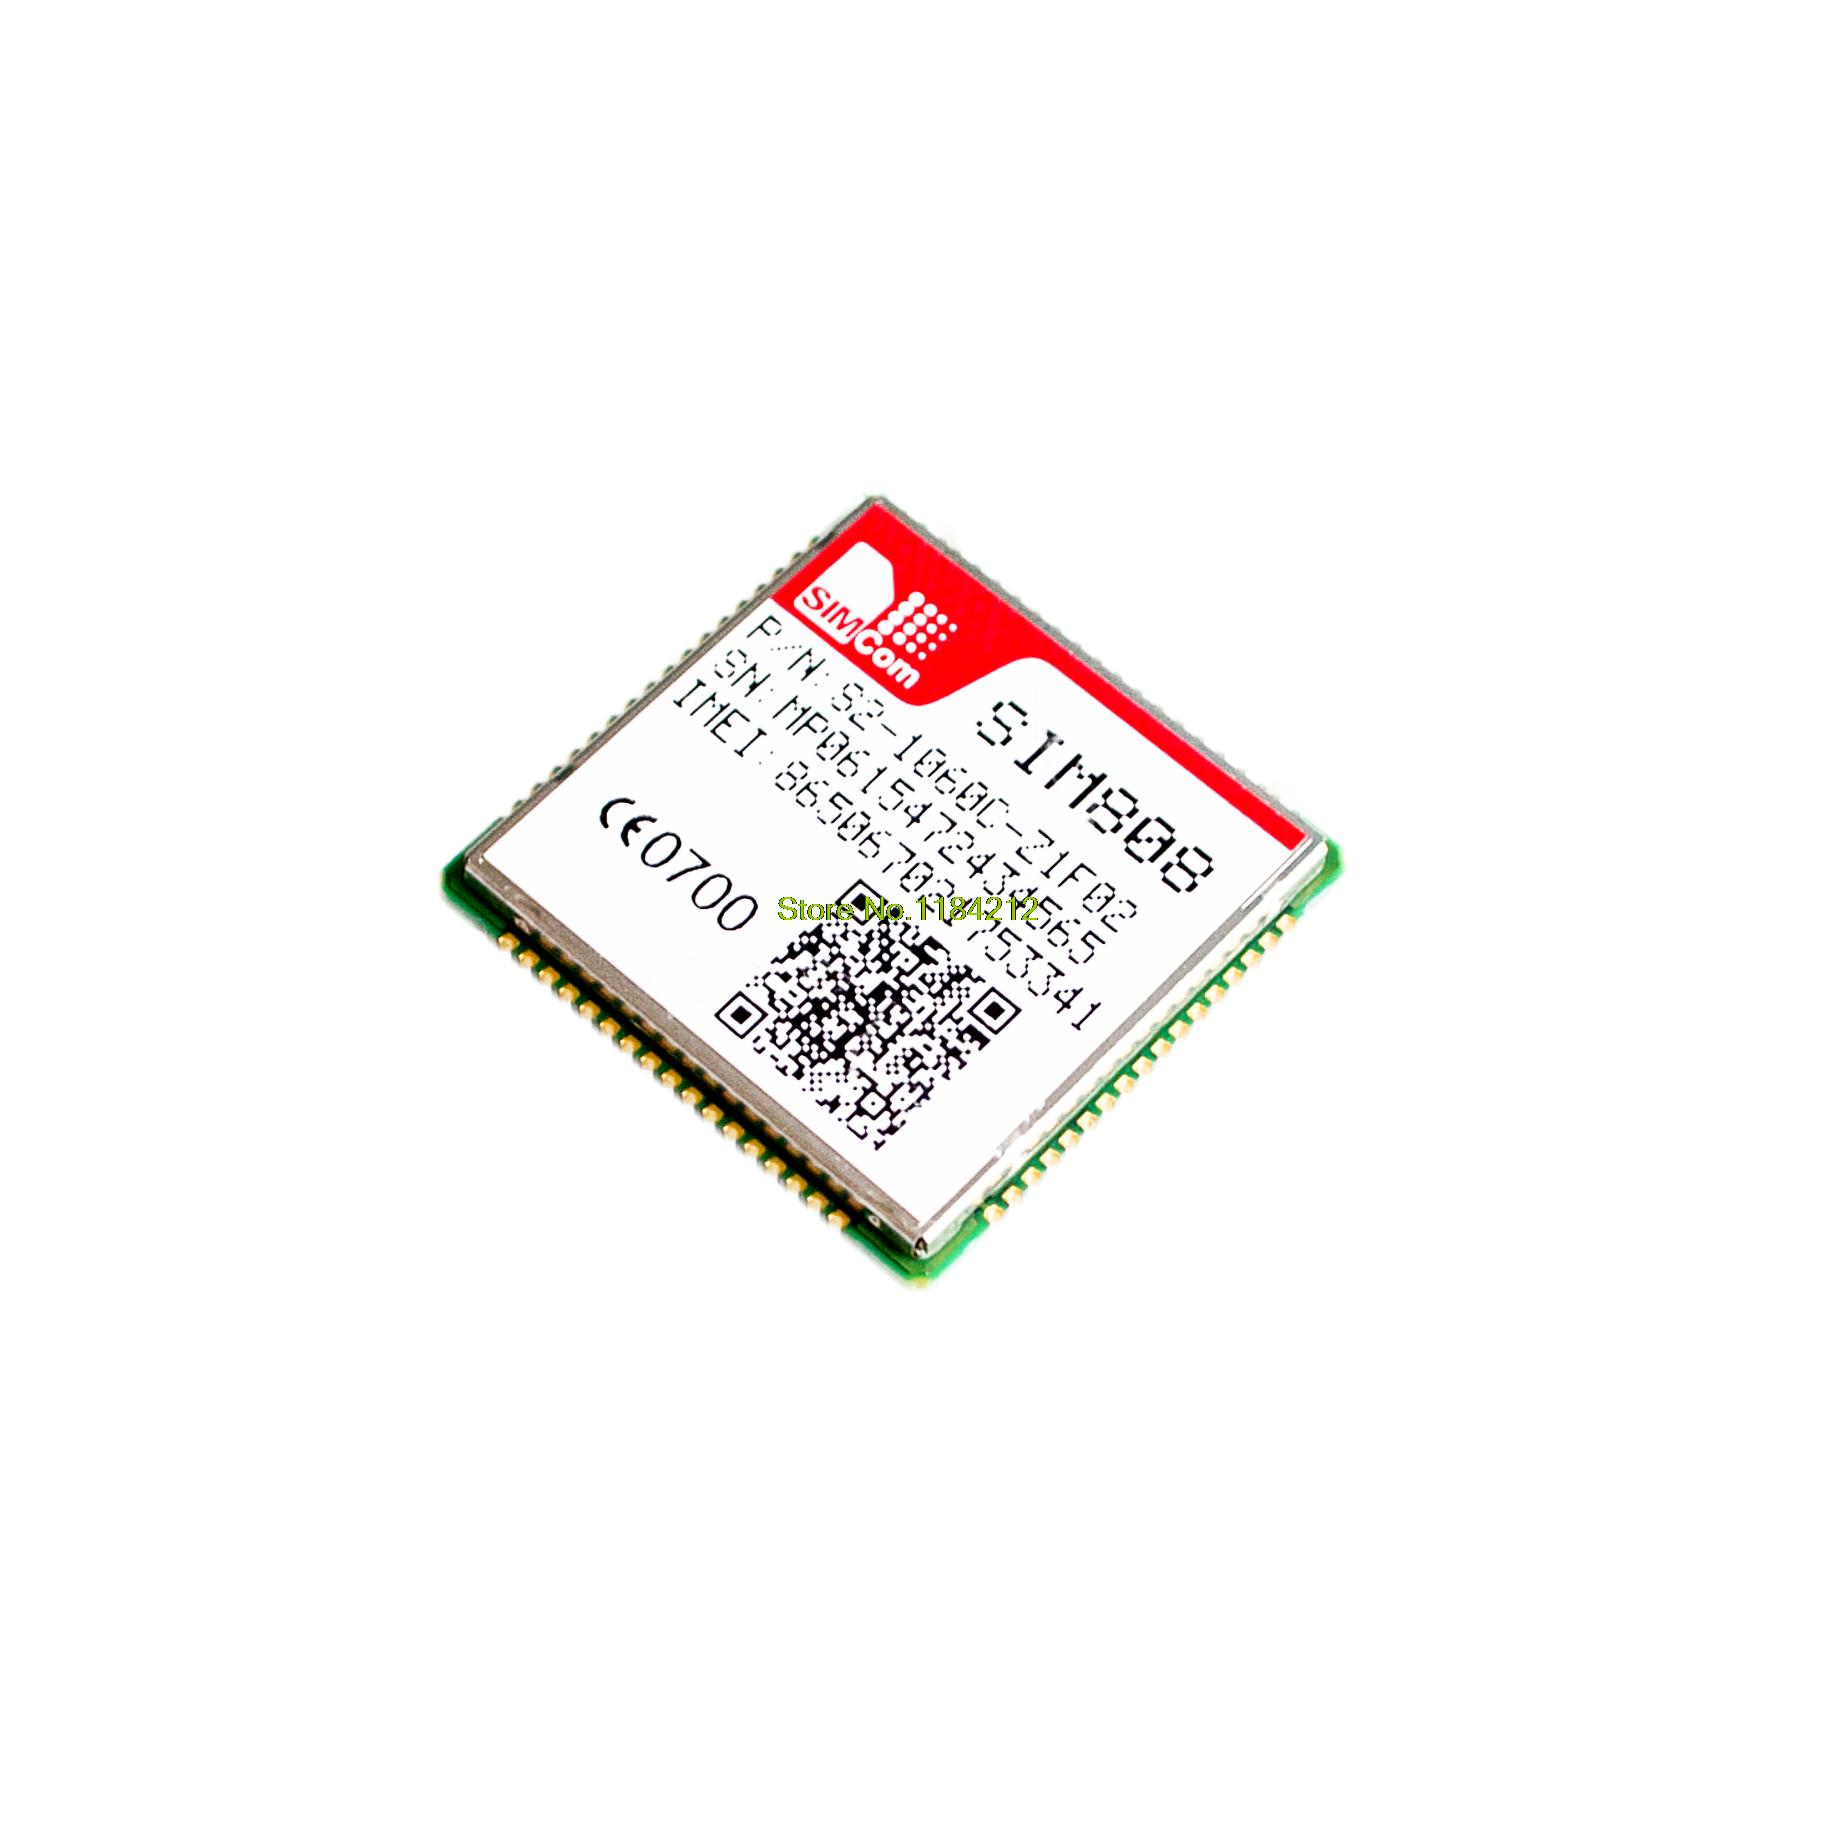 Compare Prices on Gsm Gps Module- Online Shopping/Buy Low